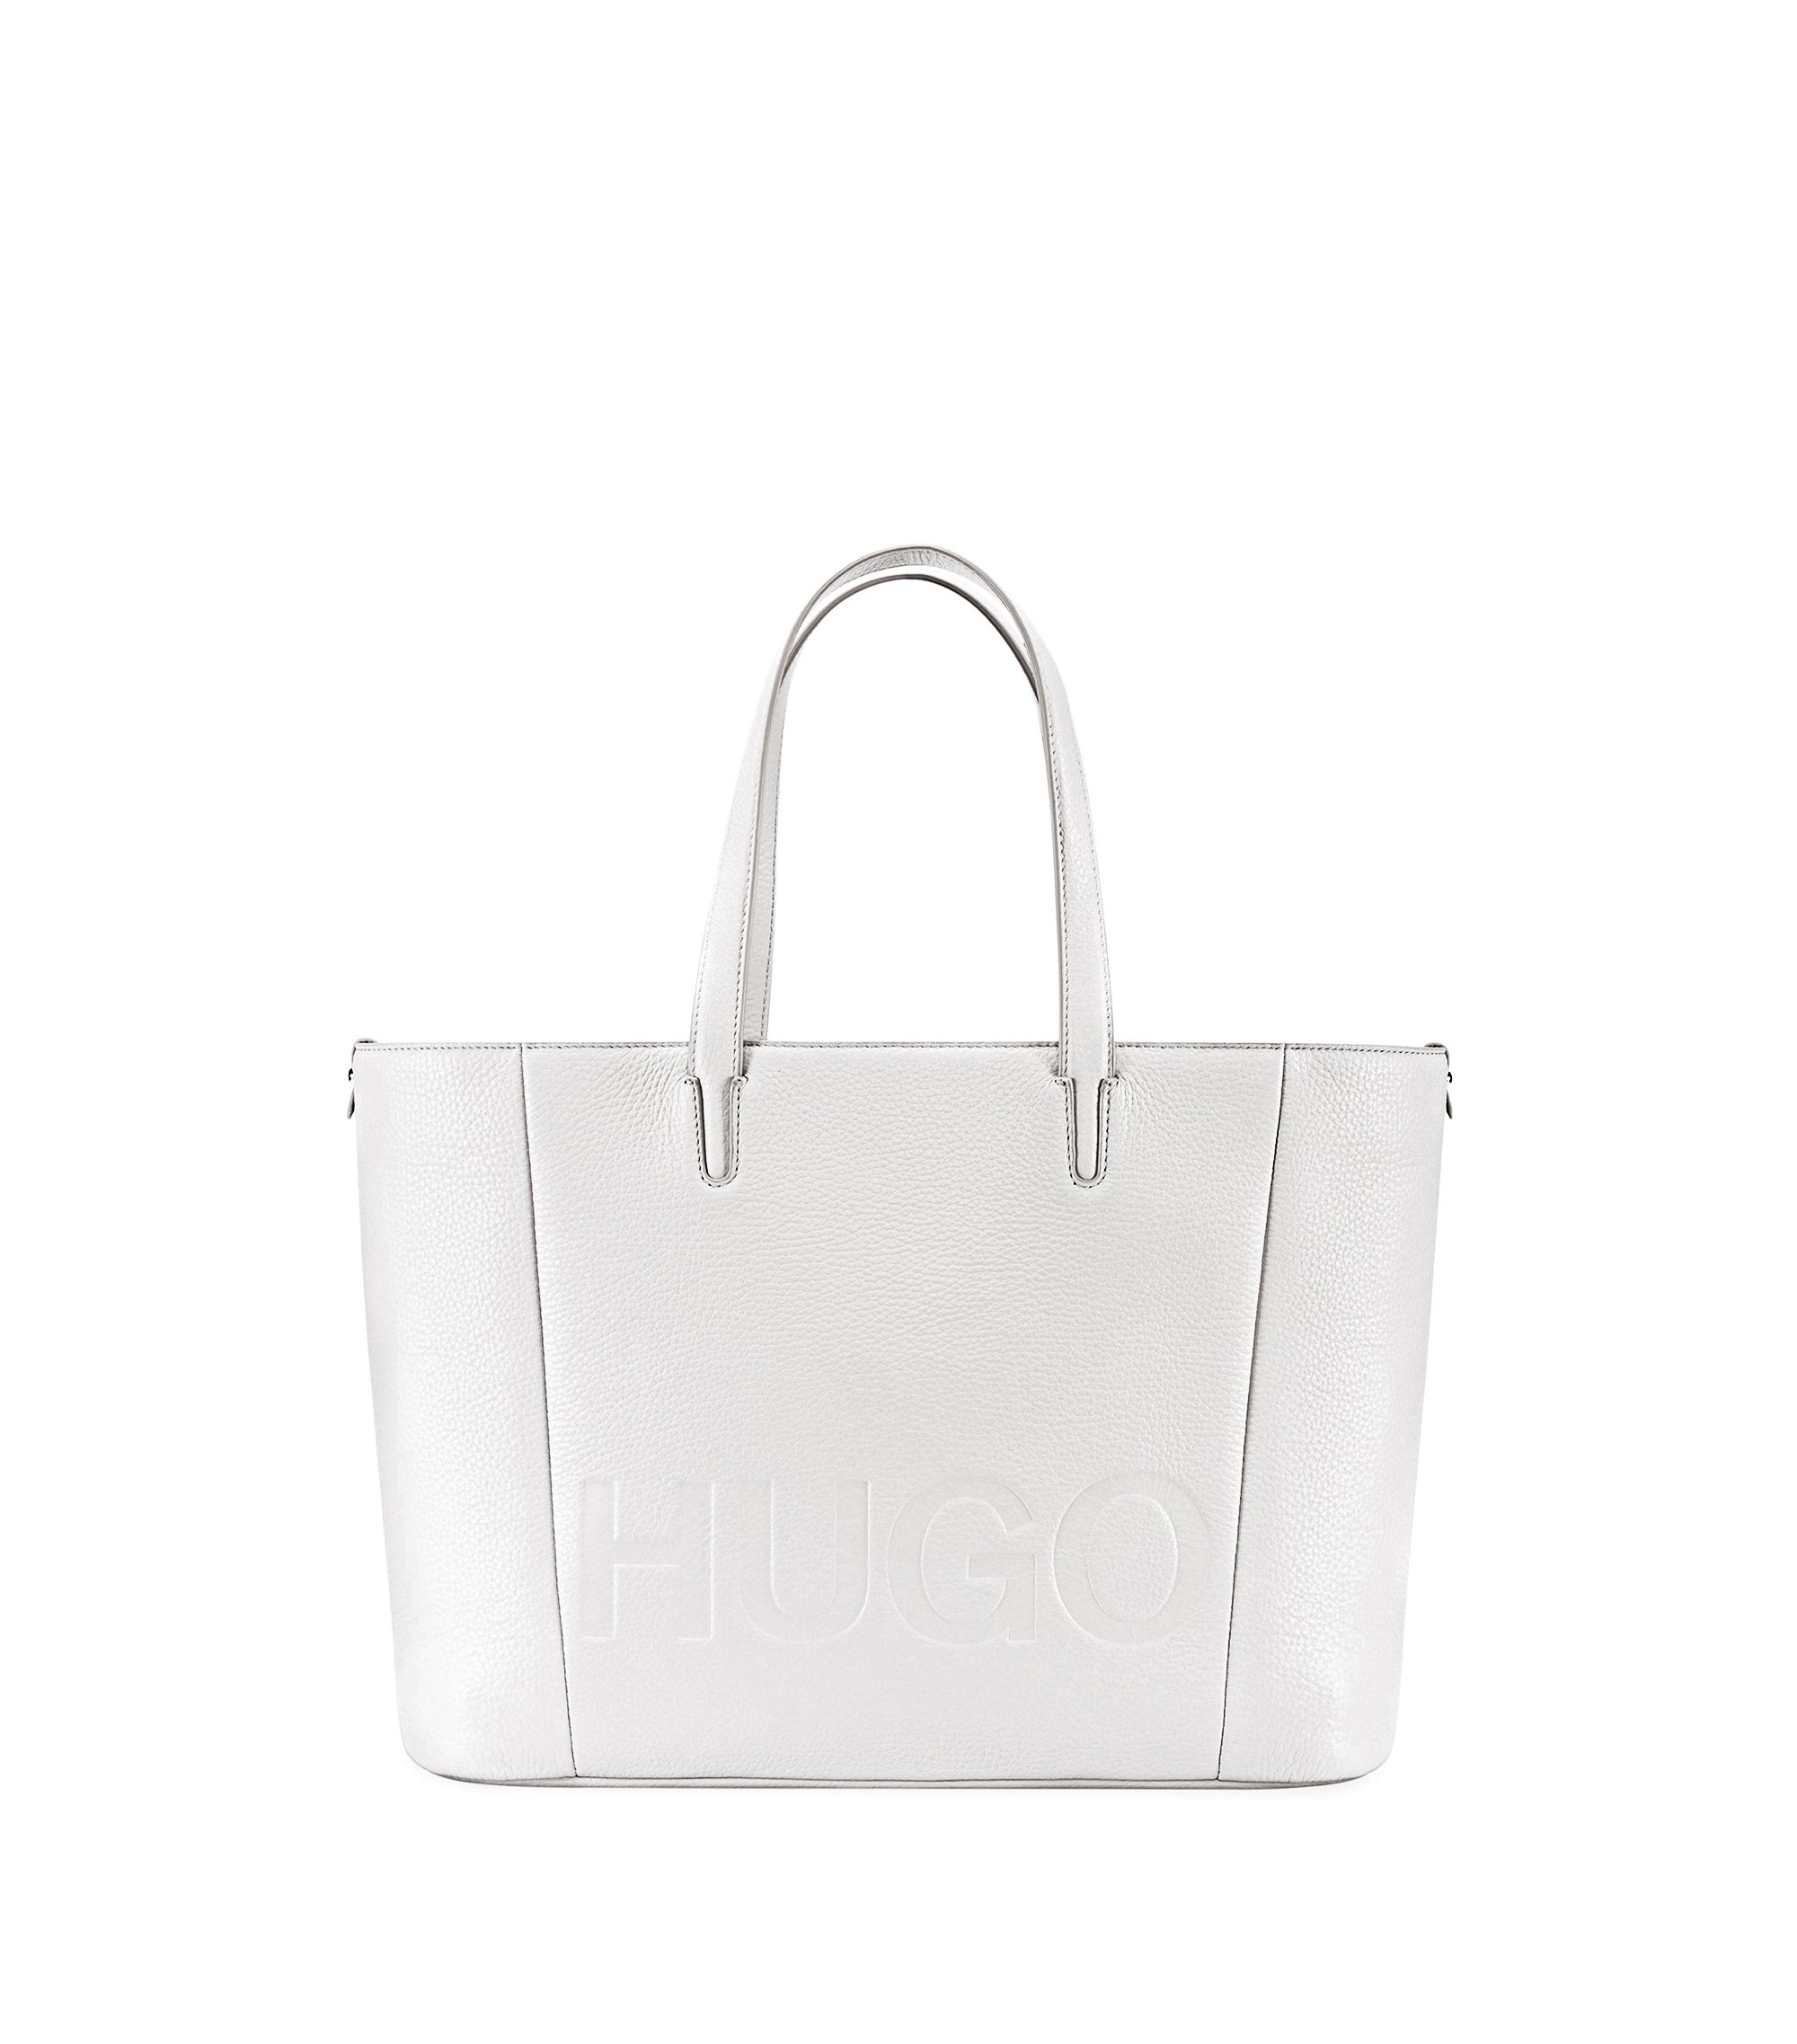 Tote bag in grained Italian leather, White